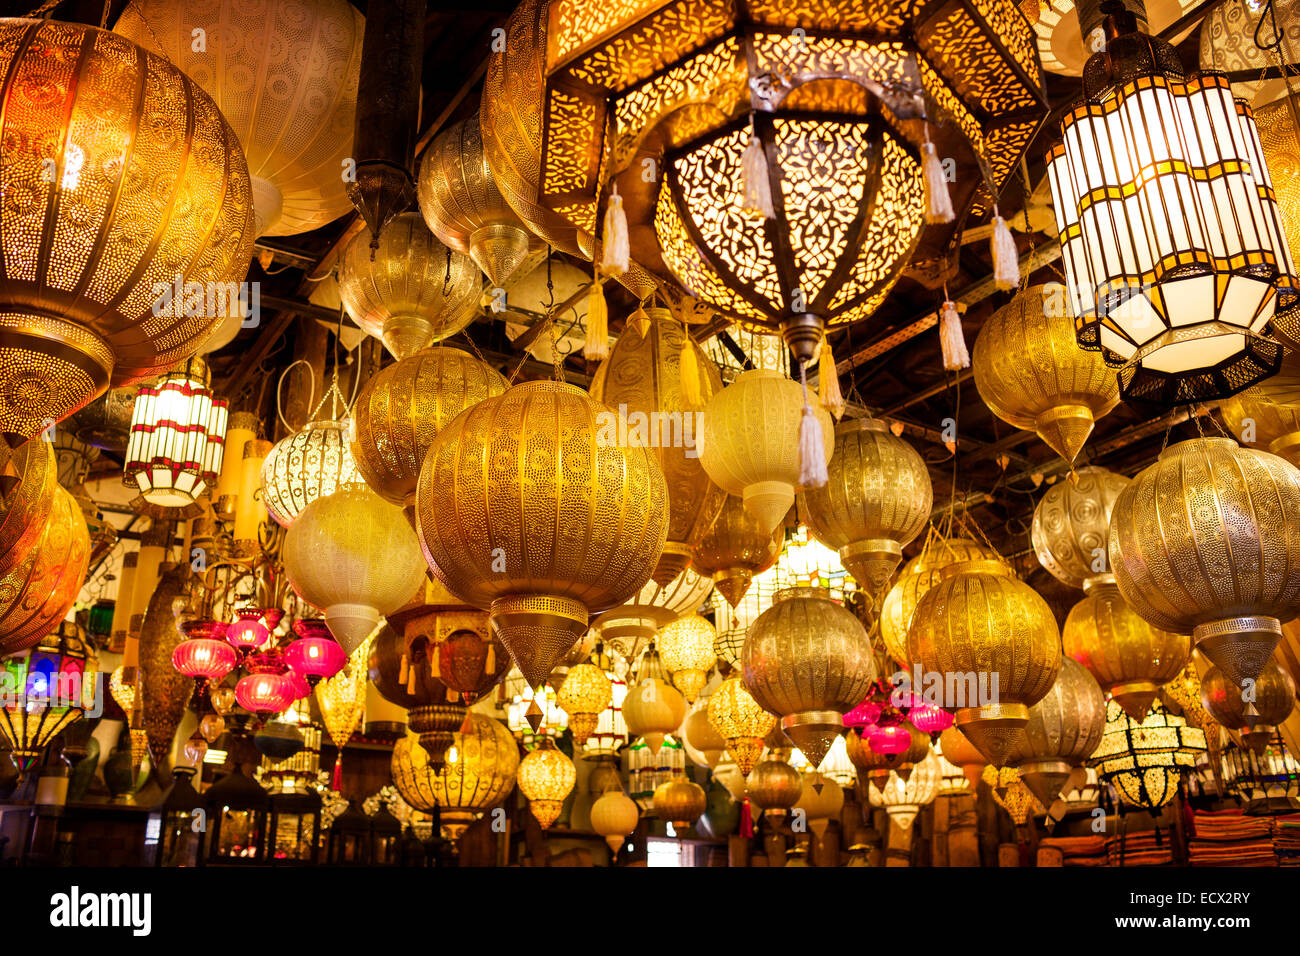 Low angle view of various illuminated lamps in market - Stock Image